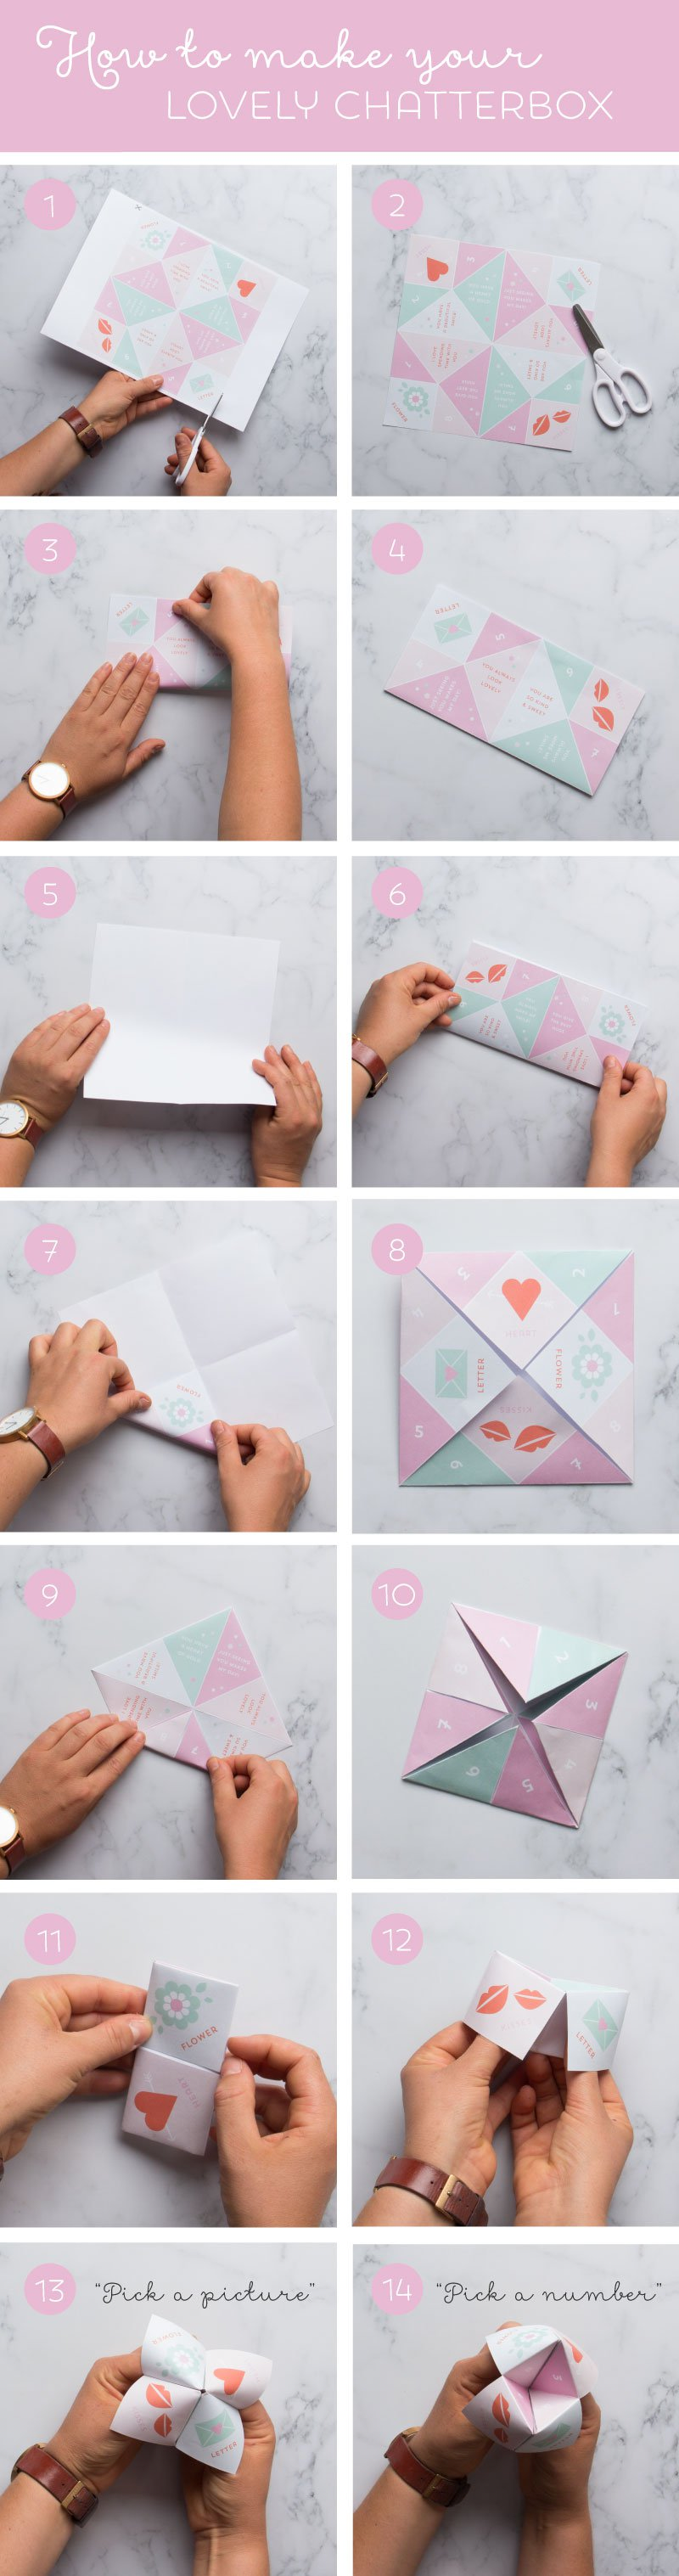 Valentines Chatterbox Printable Heart And Valentine Crafts